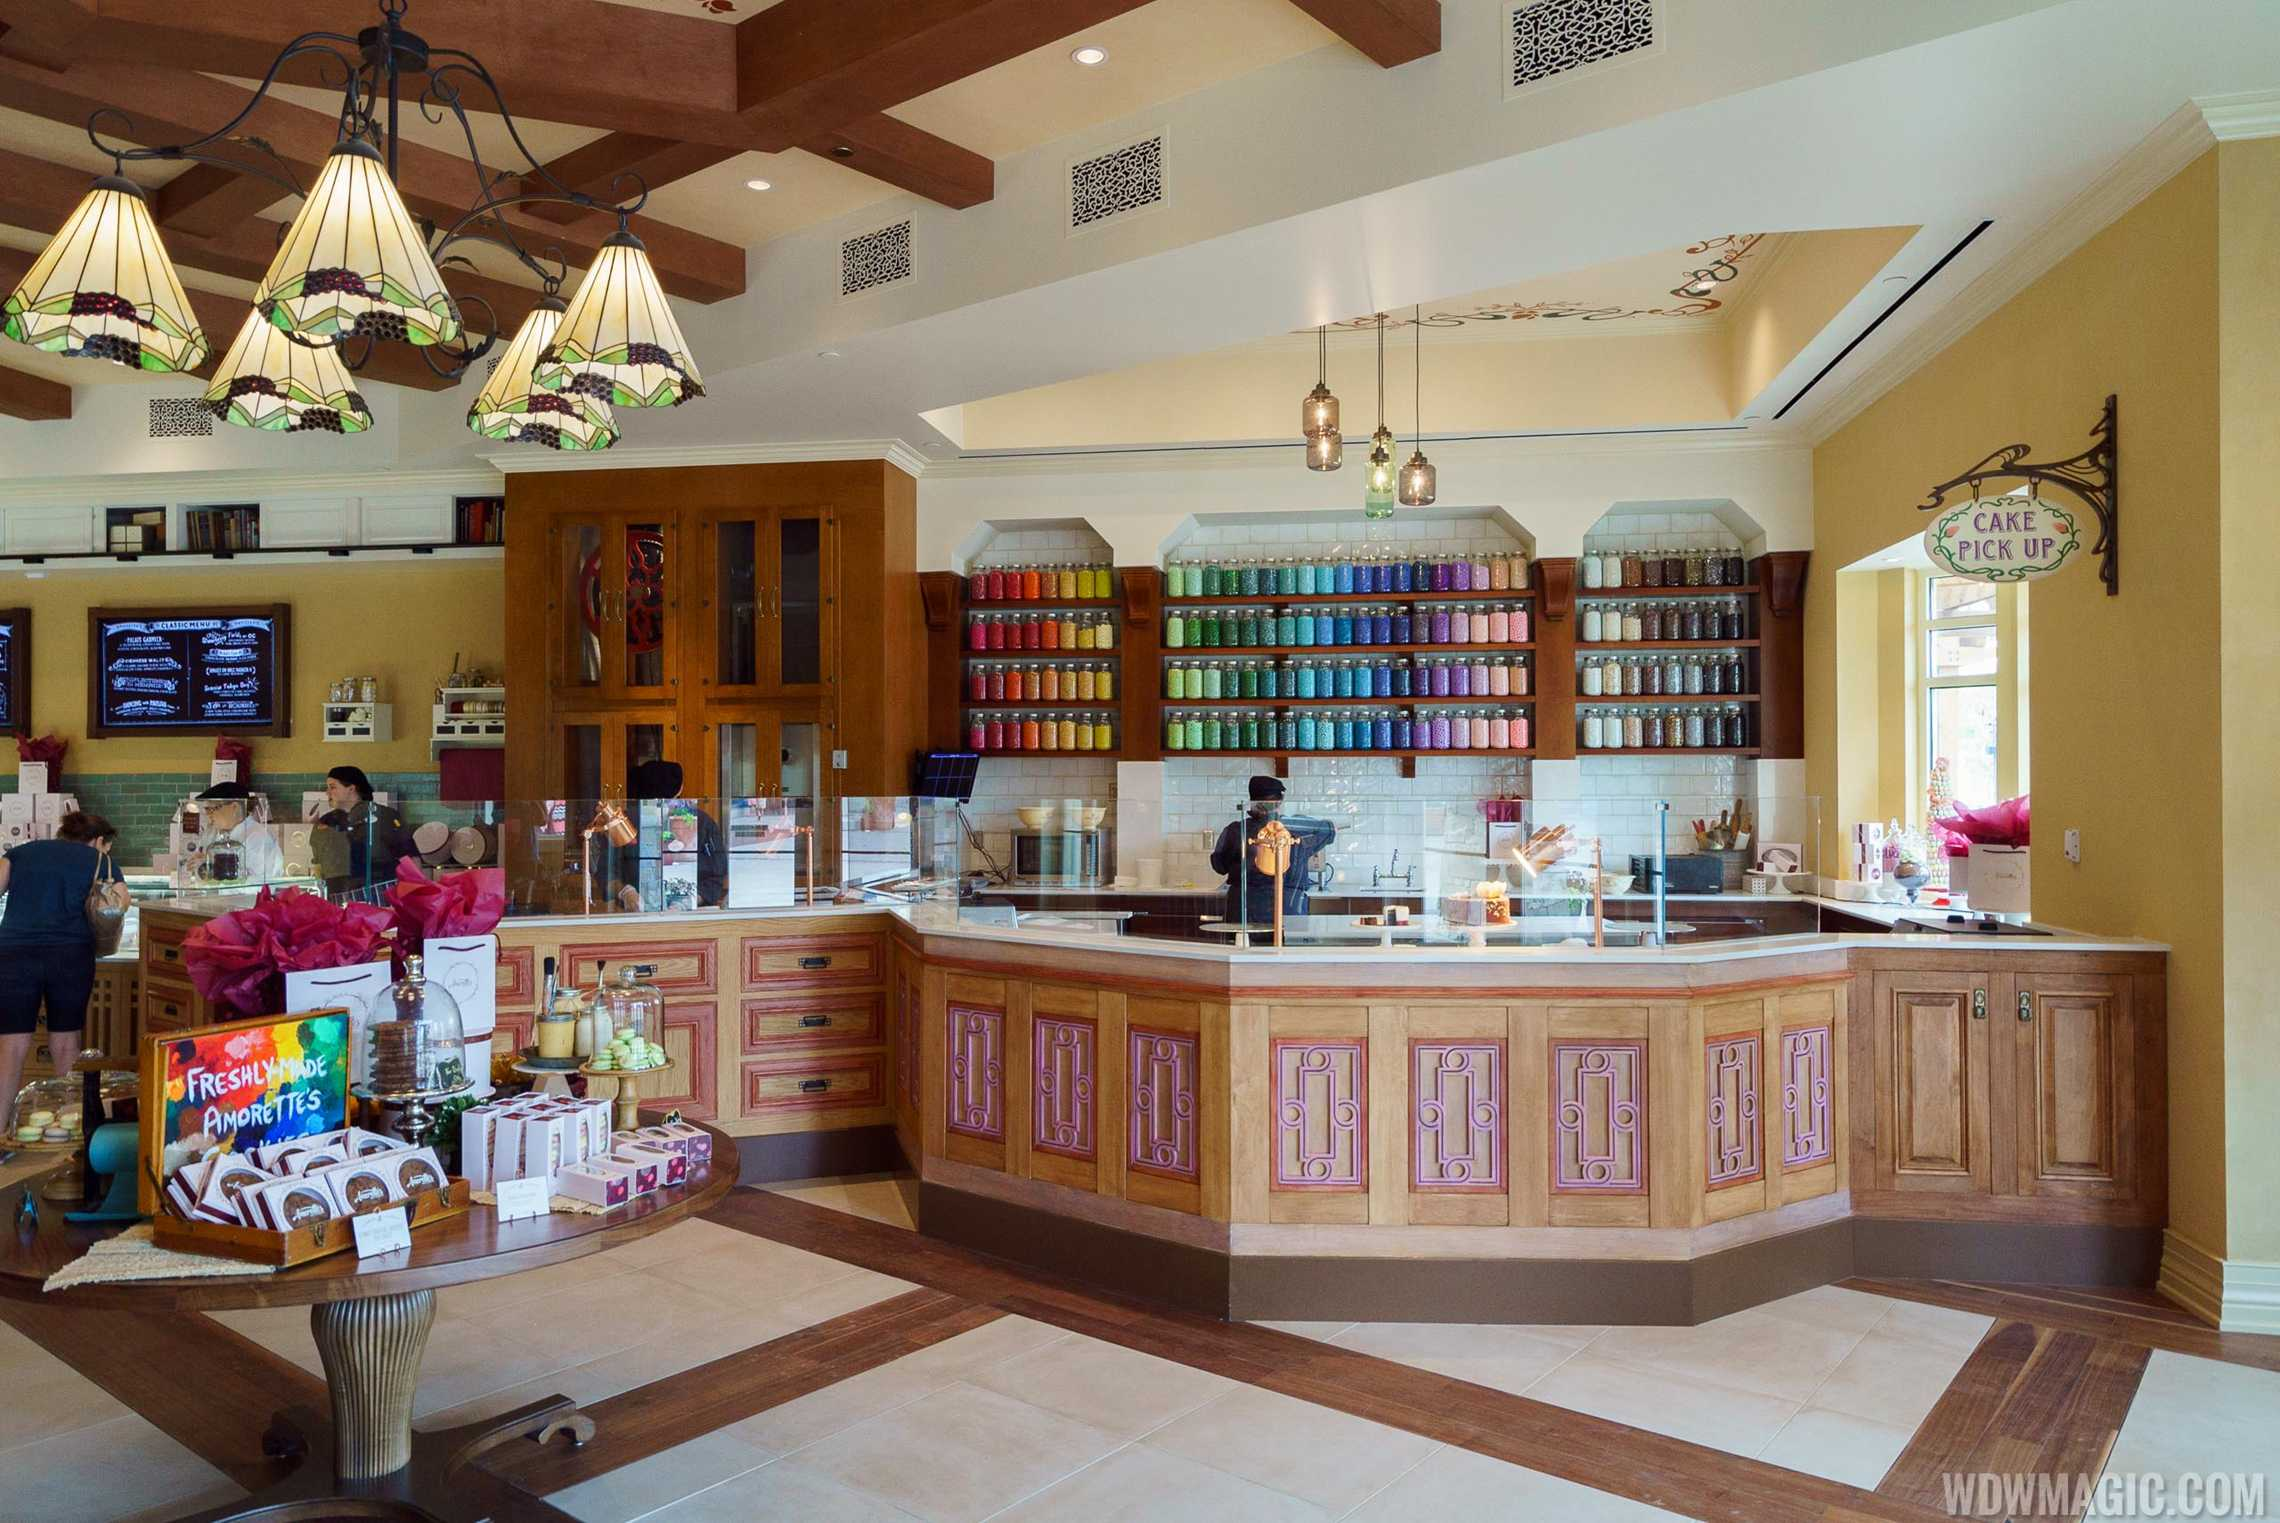 Amorette's Patisserie - Onstage kitchen and pickup area